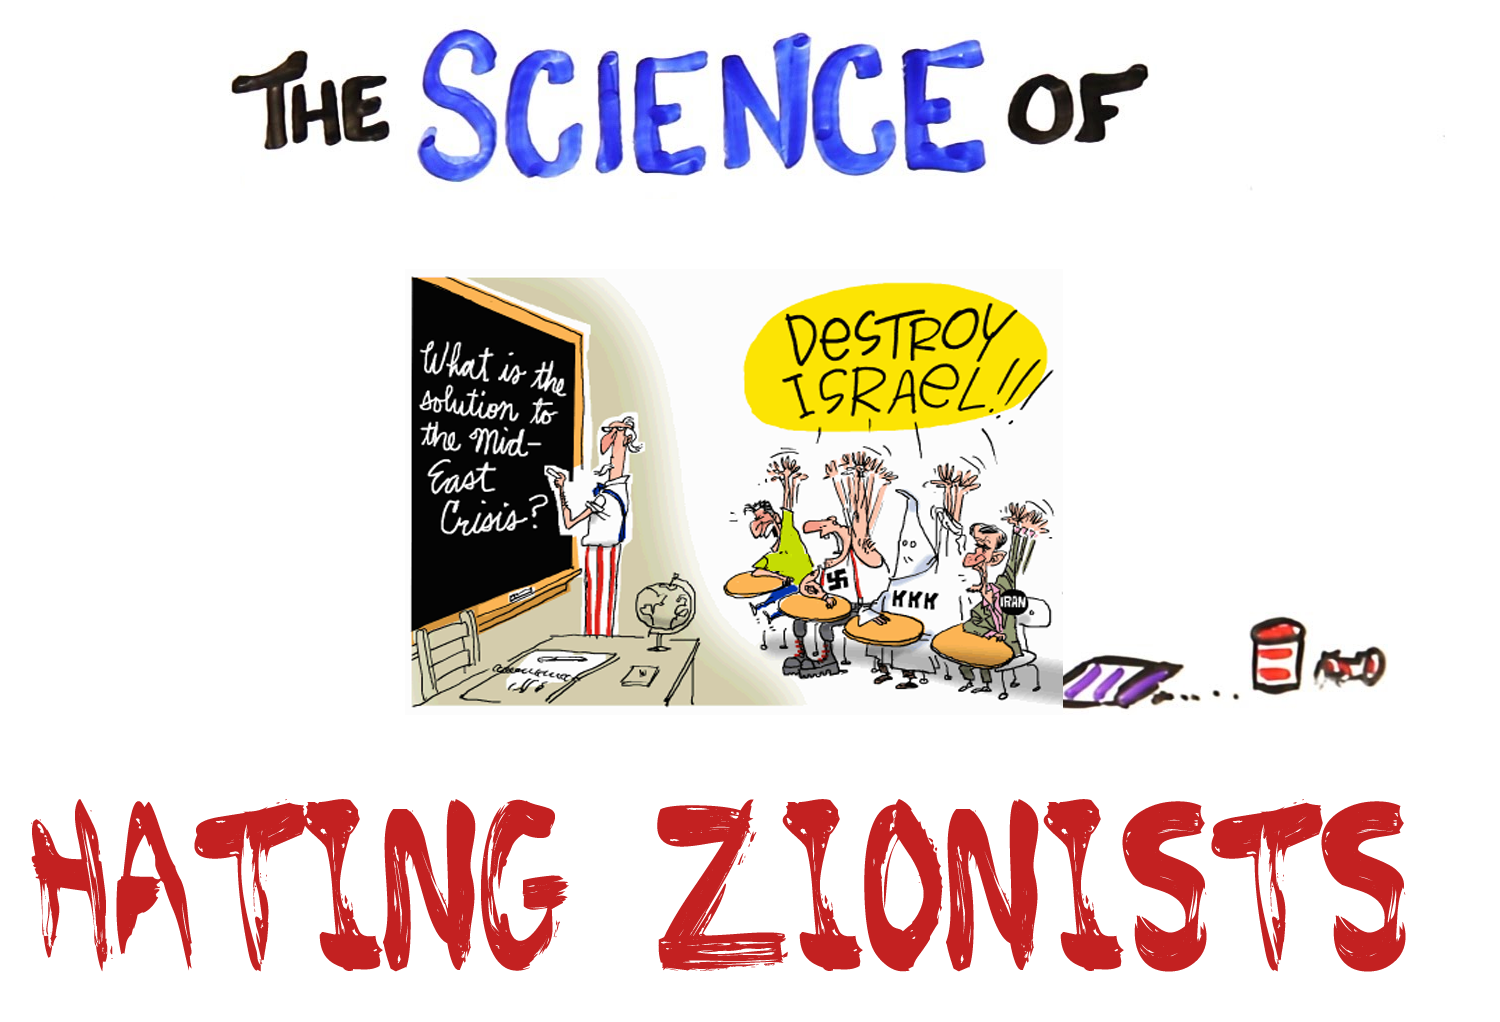 hating-zionists